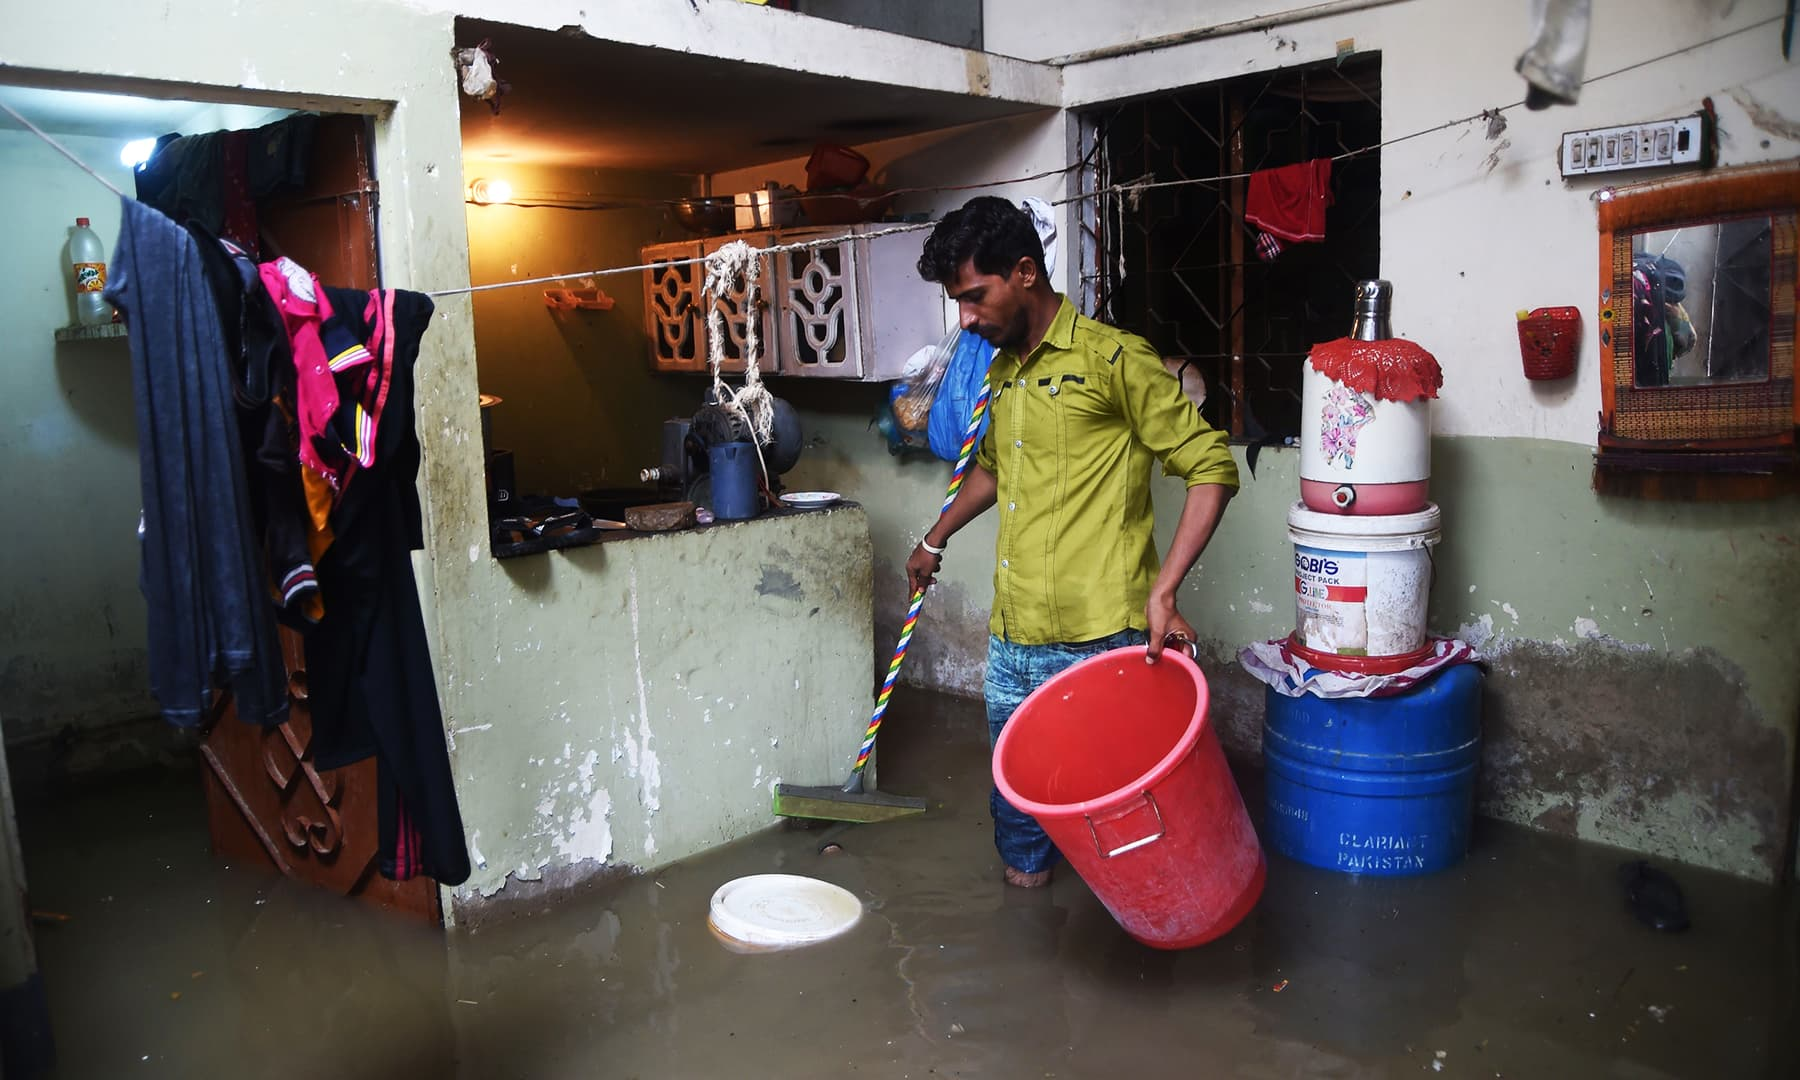 A resident tries to remove rains water from his house during heavy monsoon rains in Karachi on Tuesday. — AFP